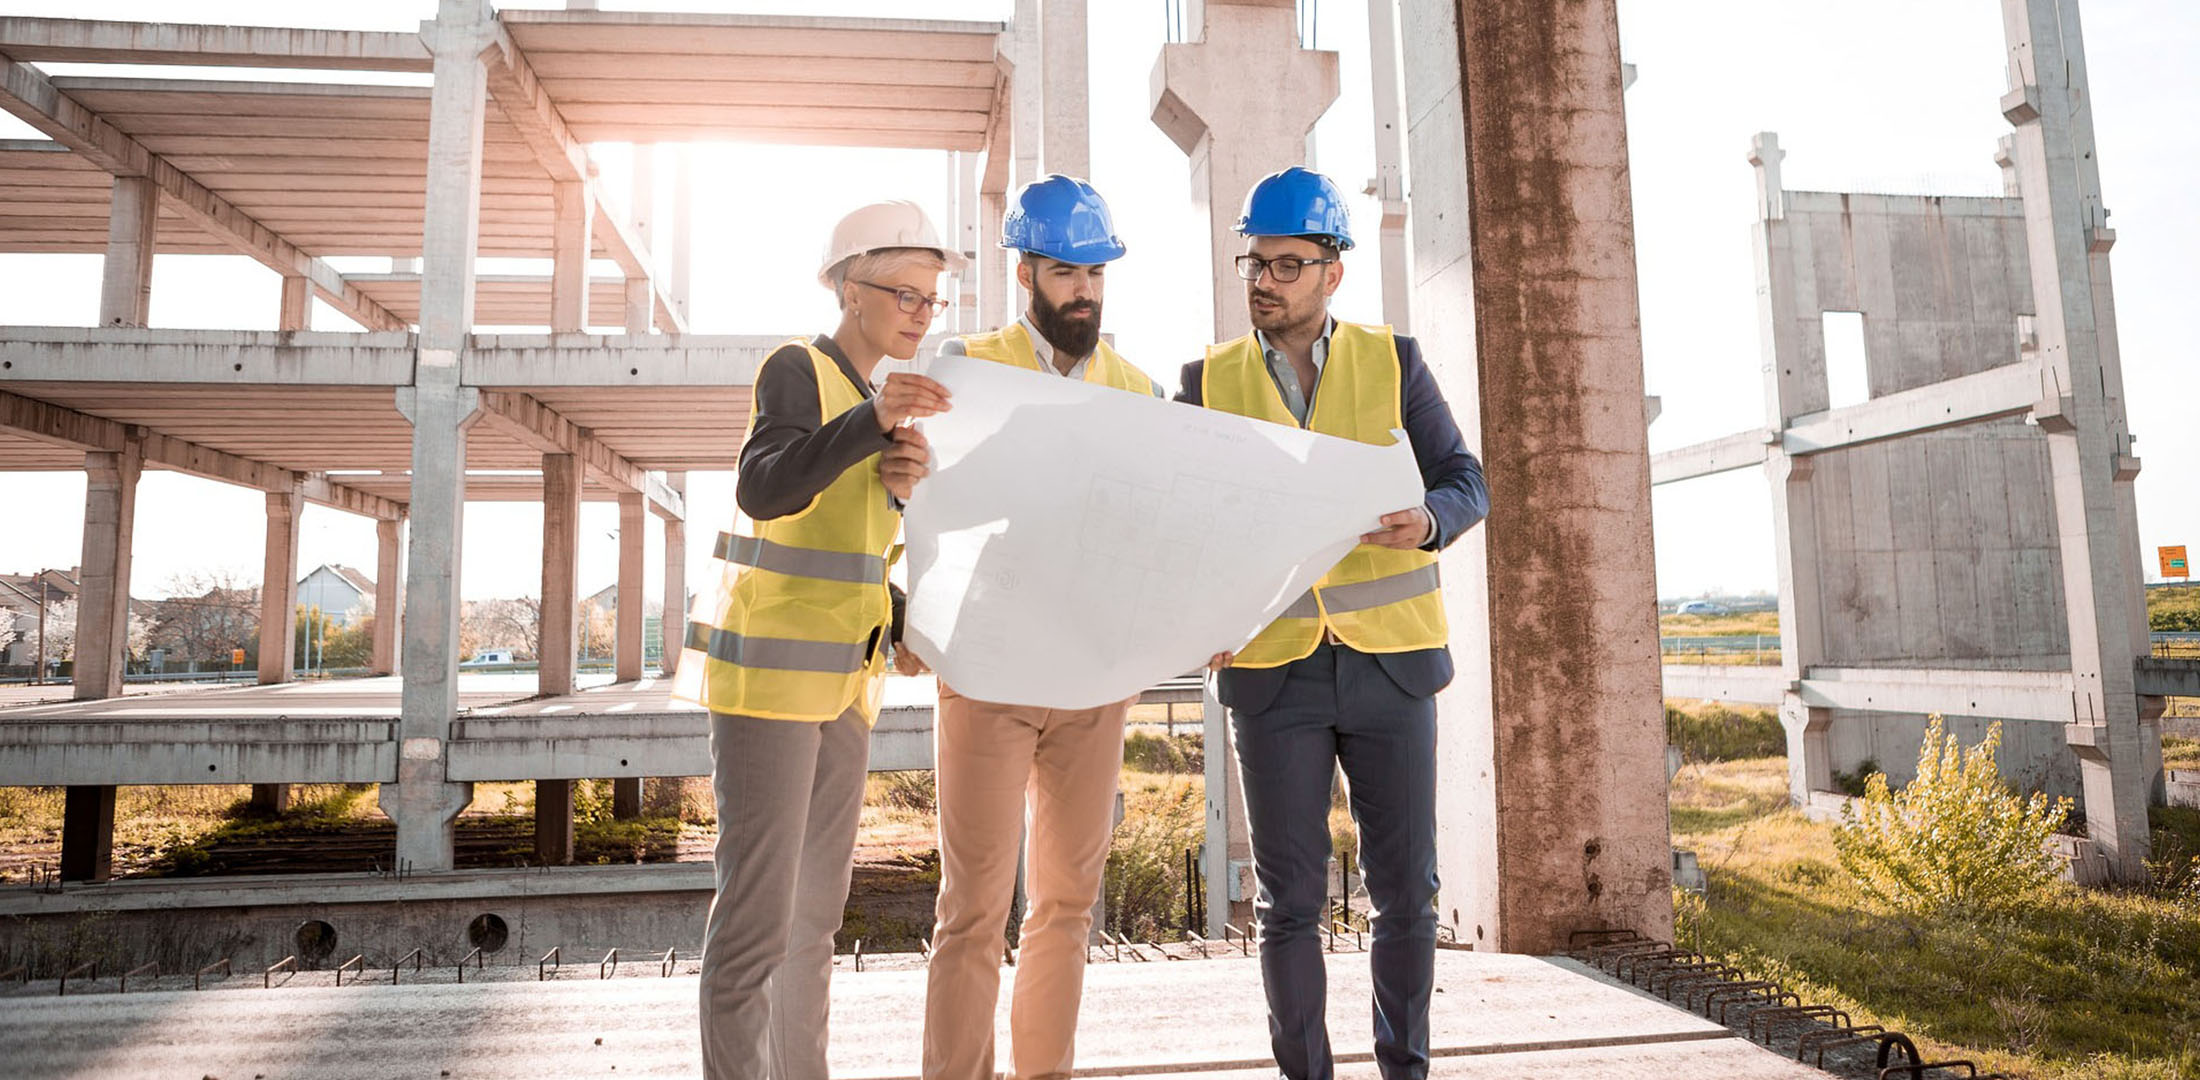 Builders reviewing plans | Featured image for CPC40110 Certificate IV in Building and Construction.